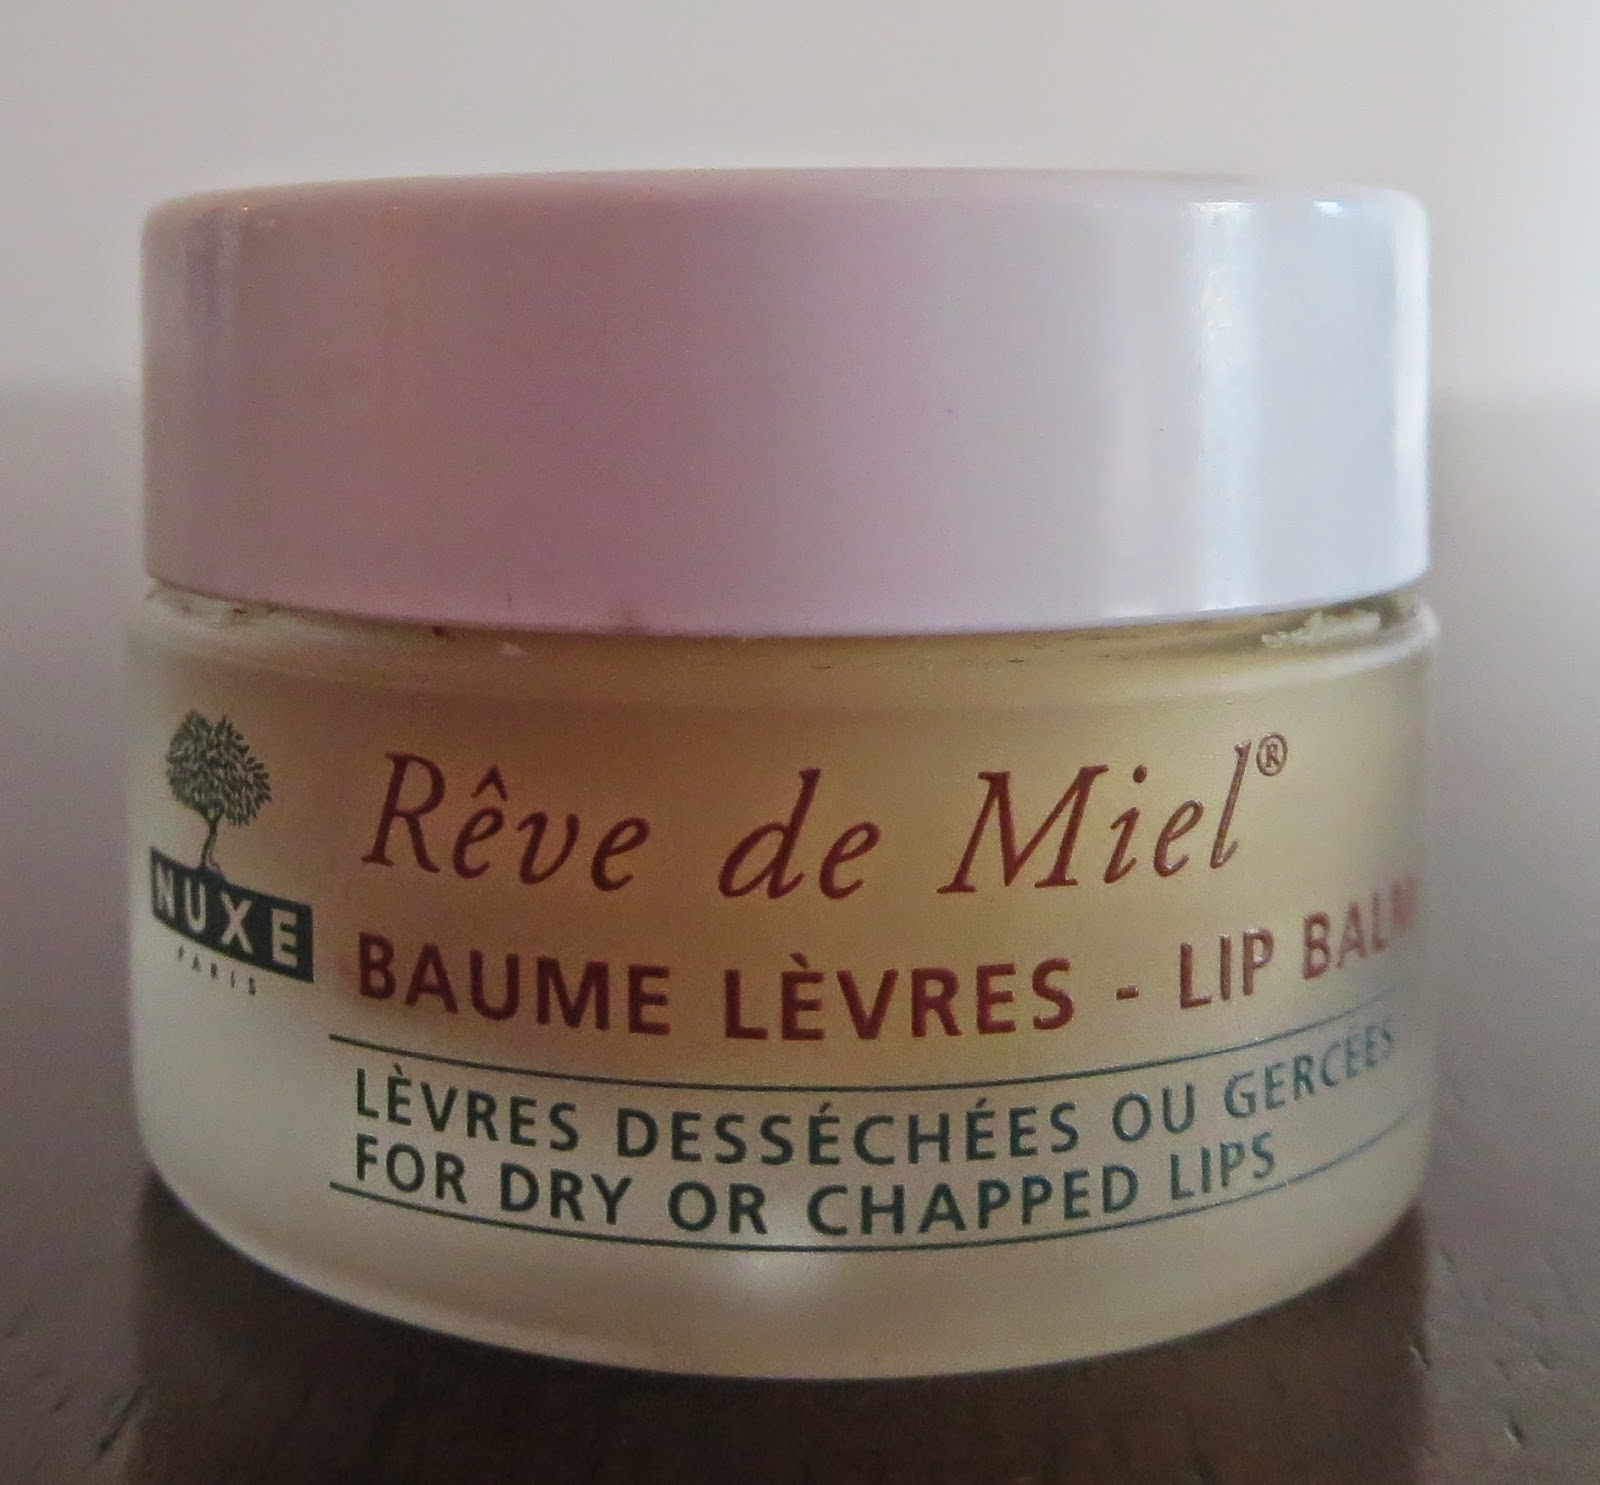 a picture of Nuxe Reve de Miel lip balm